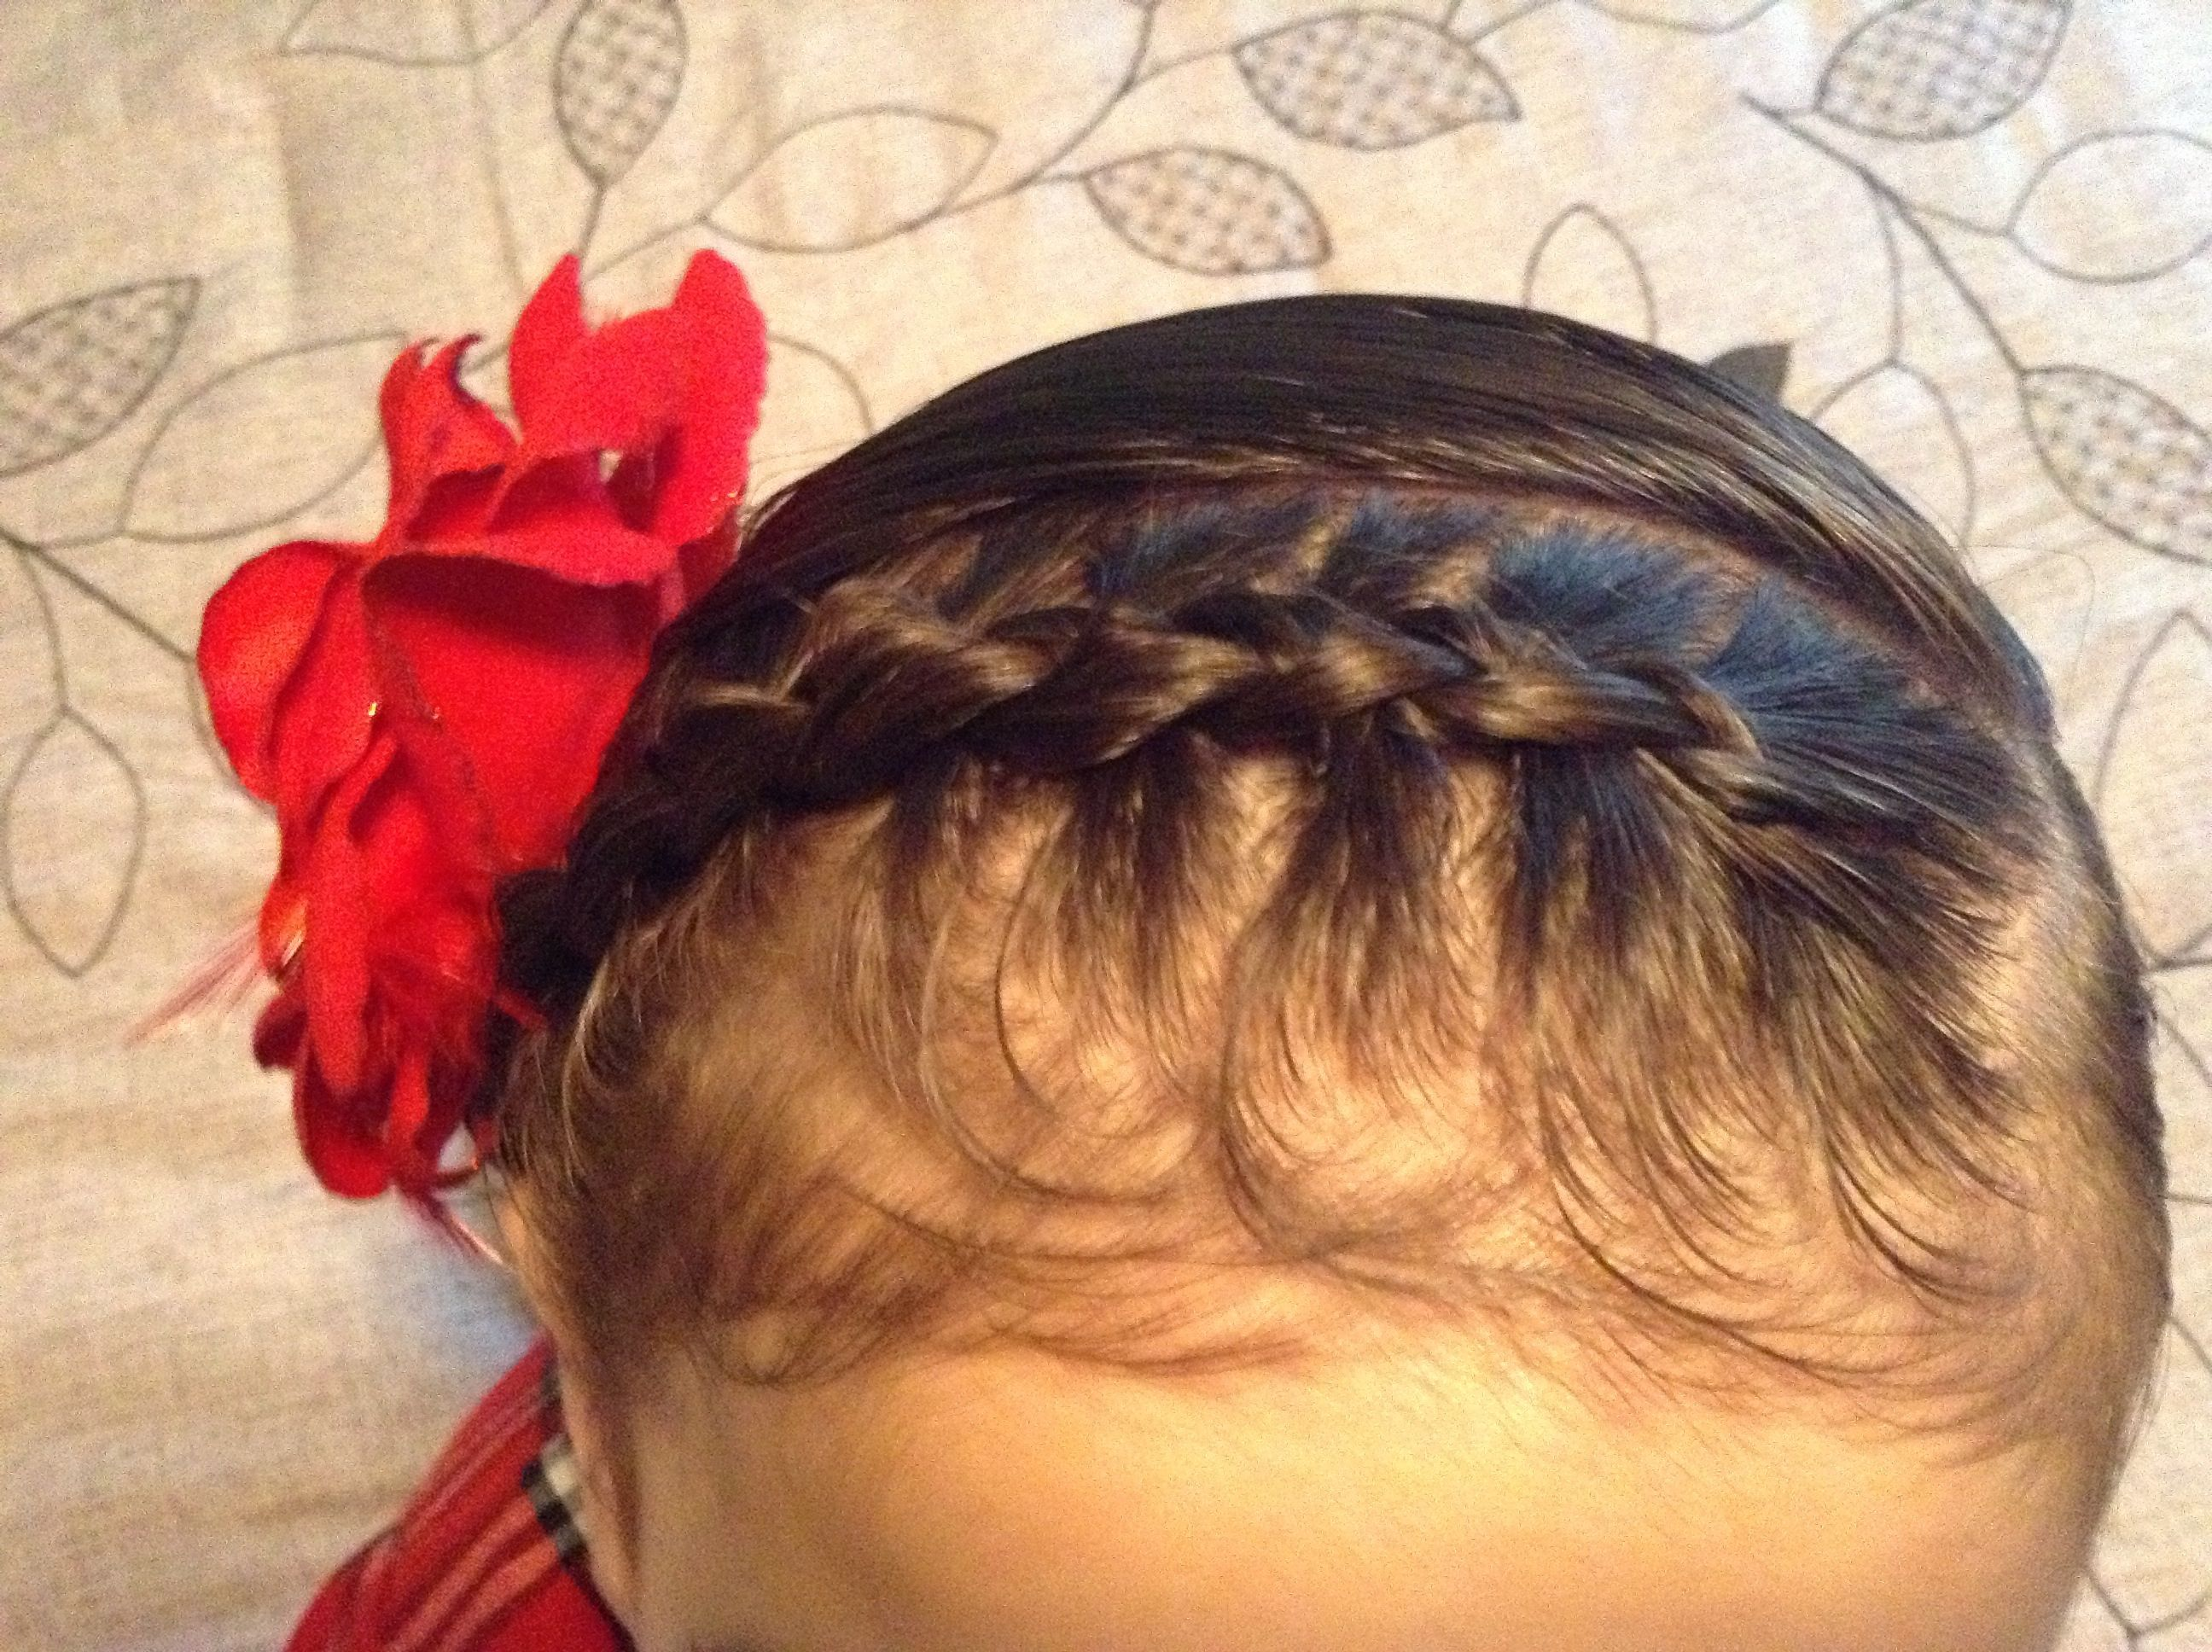 Hairstyles For Toddlers Stunning Cute Hairstyles For Toddlers  Dresses&bows&things Pinterest